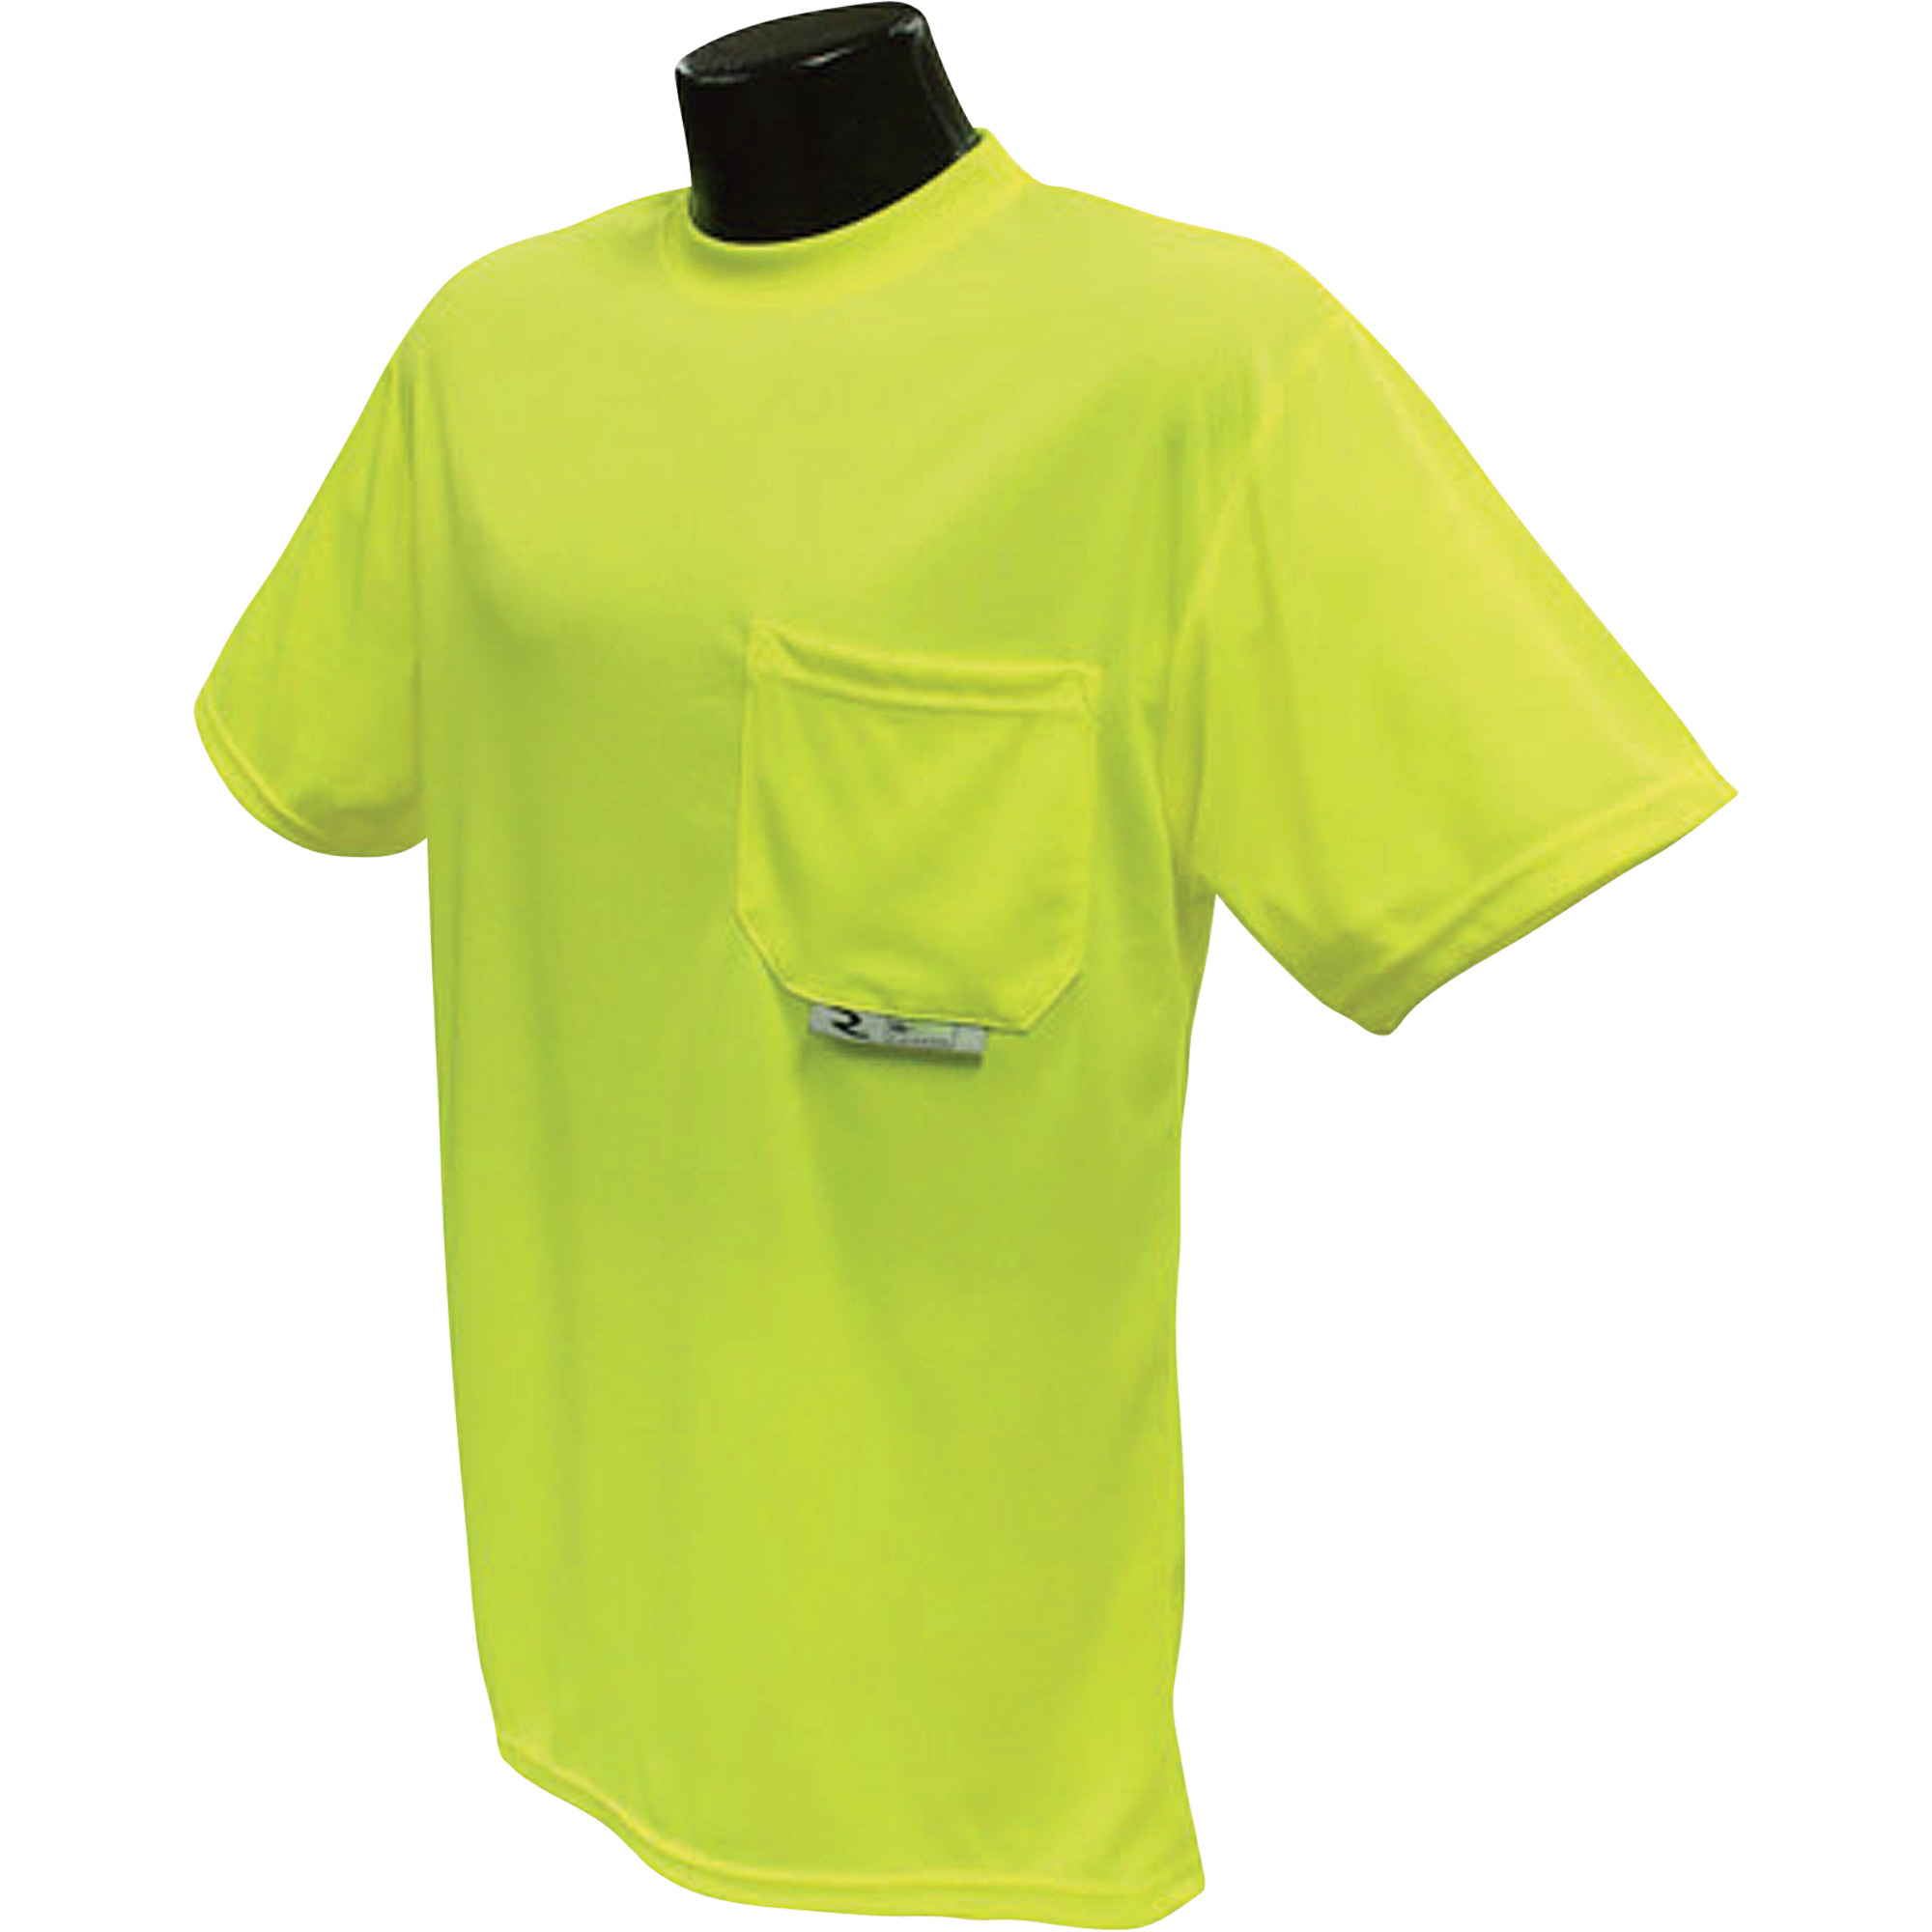 Radians Radwear Men 39 S Non Rated High Visibility Short